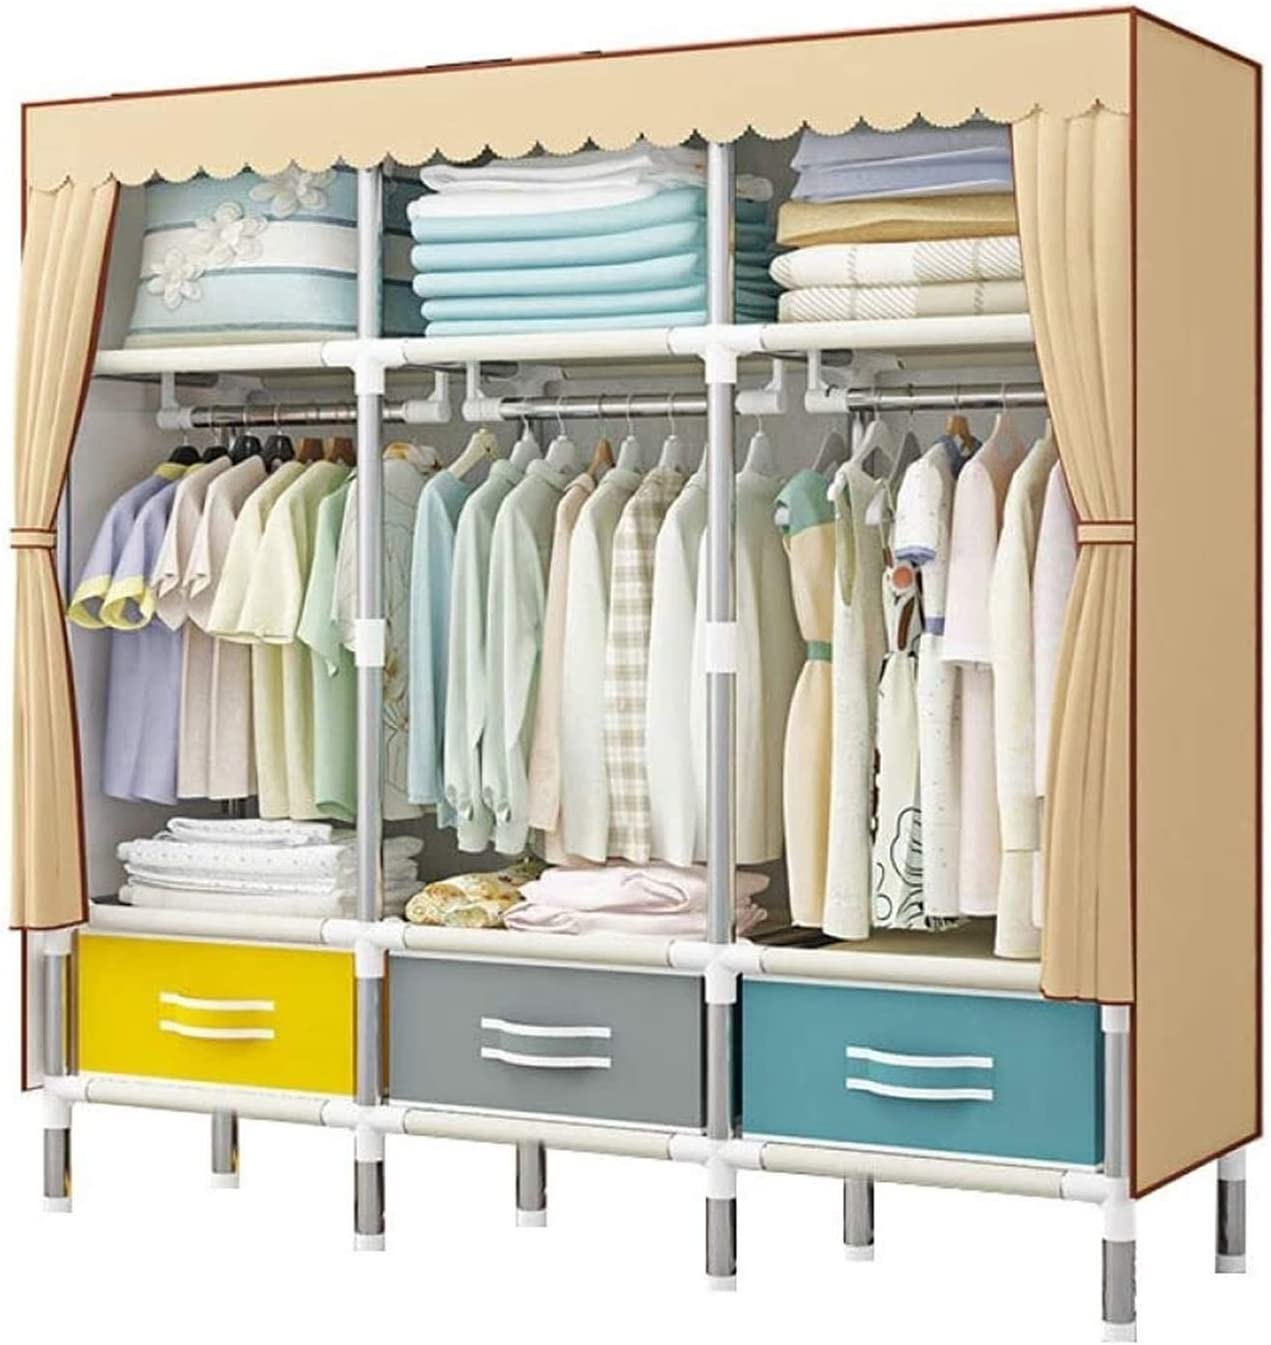 High quality new LLCY Portable Closet Wardrobe Selling rankings Clothes